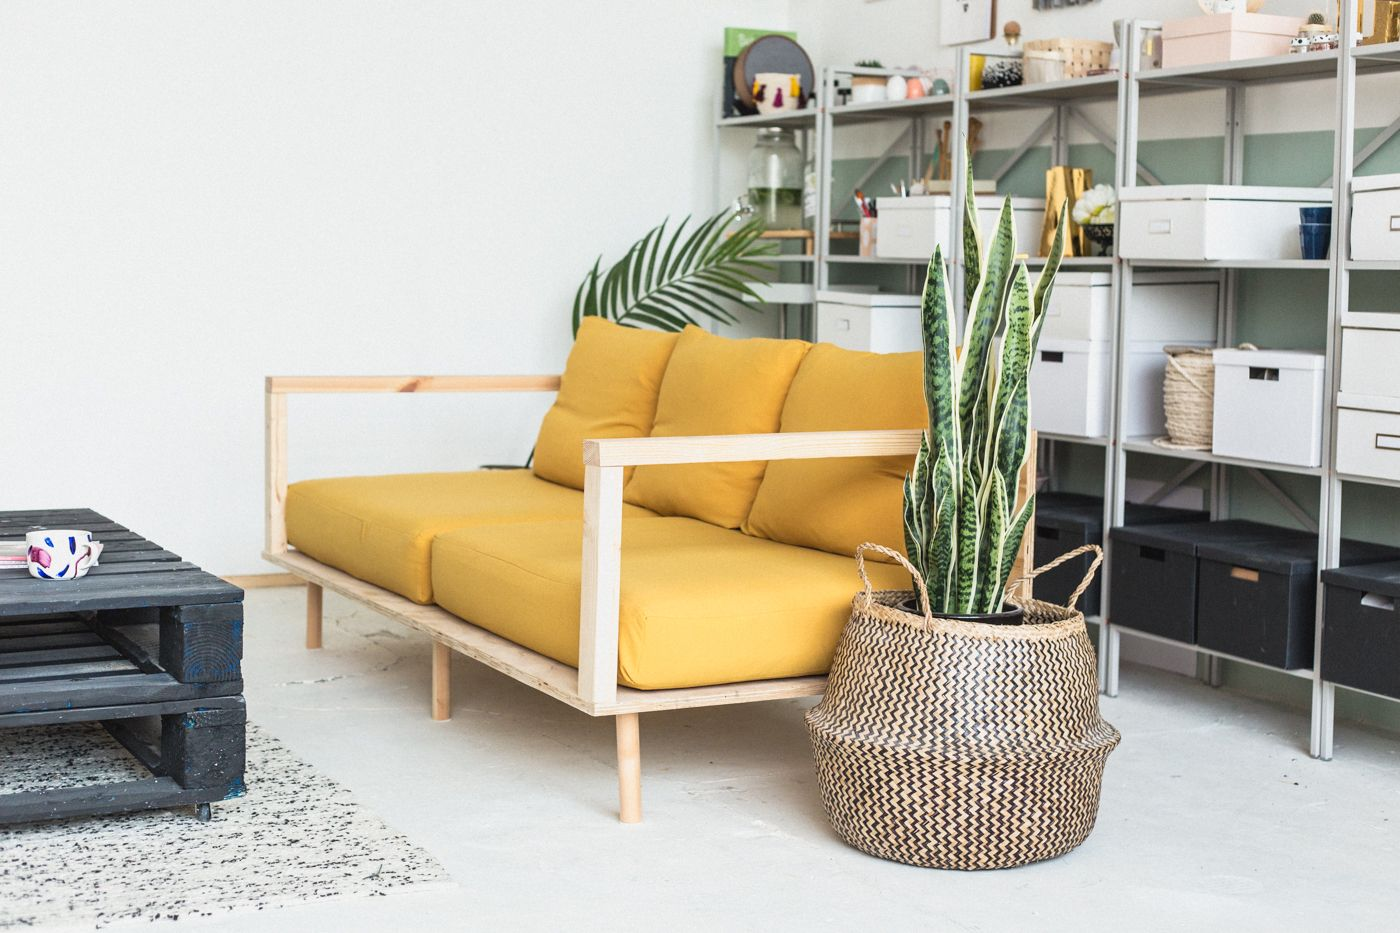 Make Yourself Comfortable with this Easy DIY Wooden Studio Sofa ...